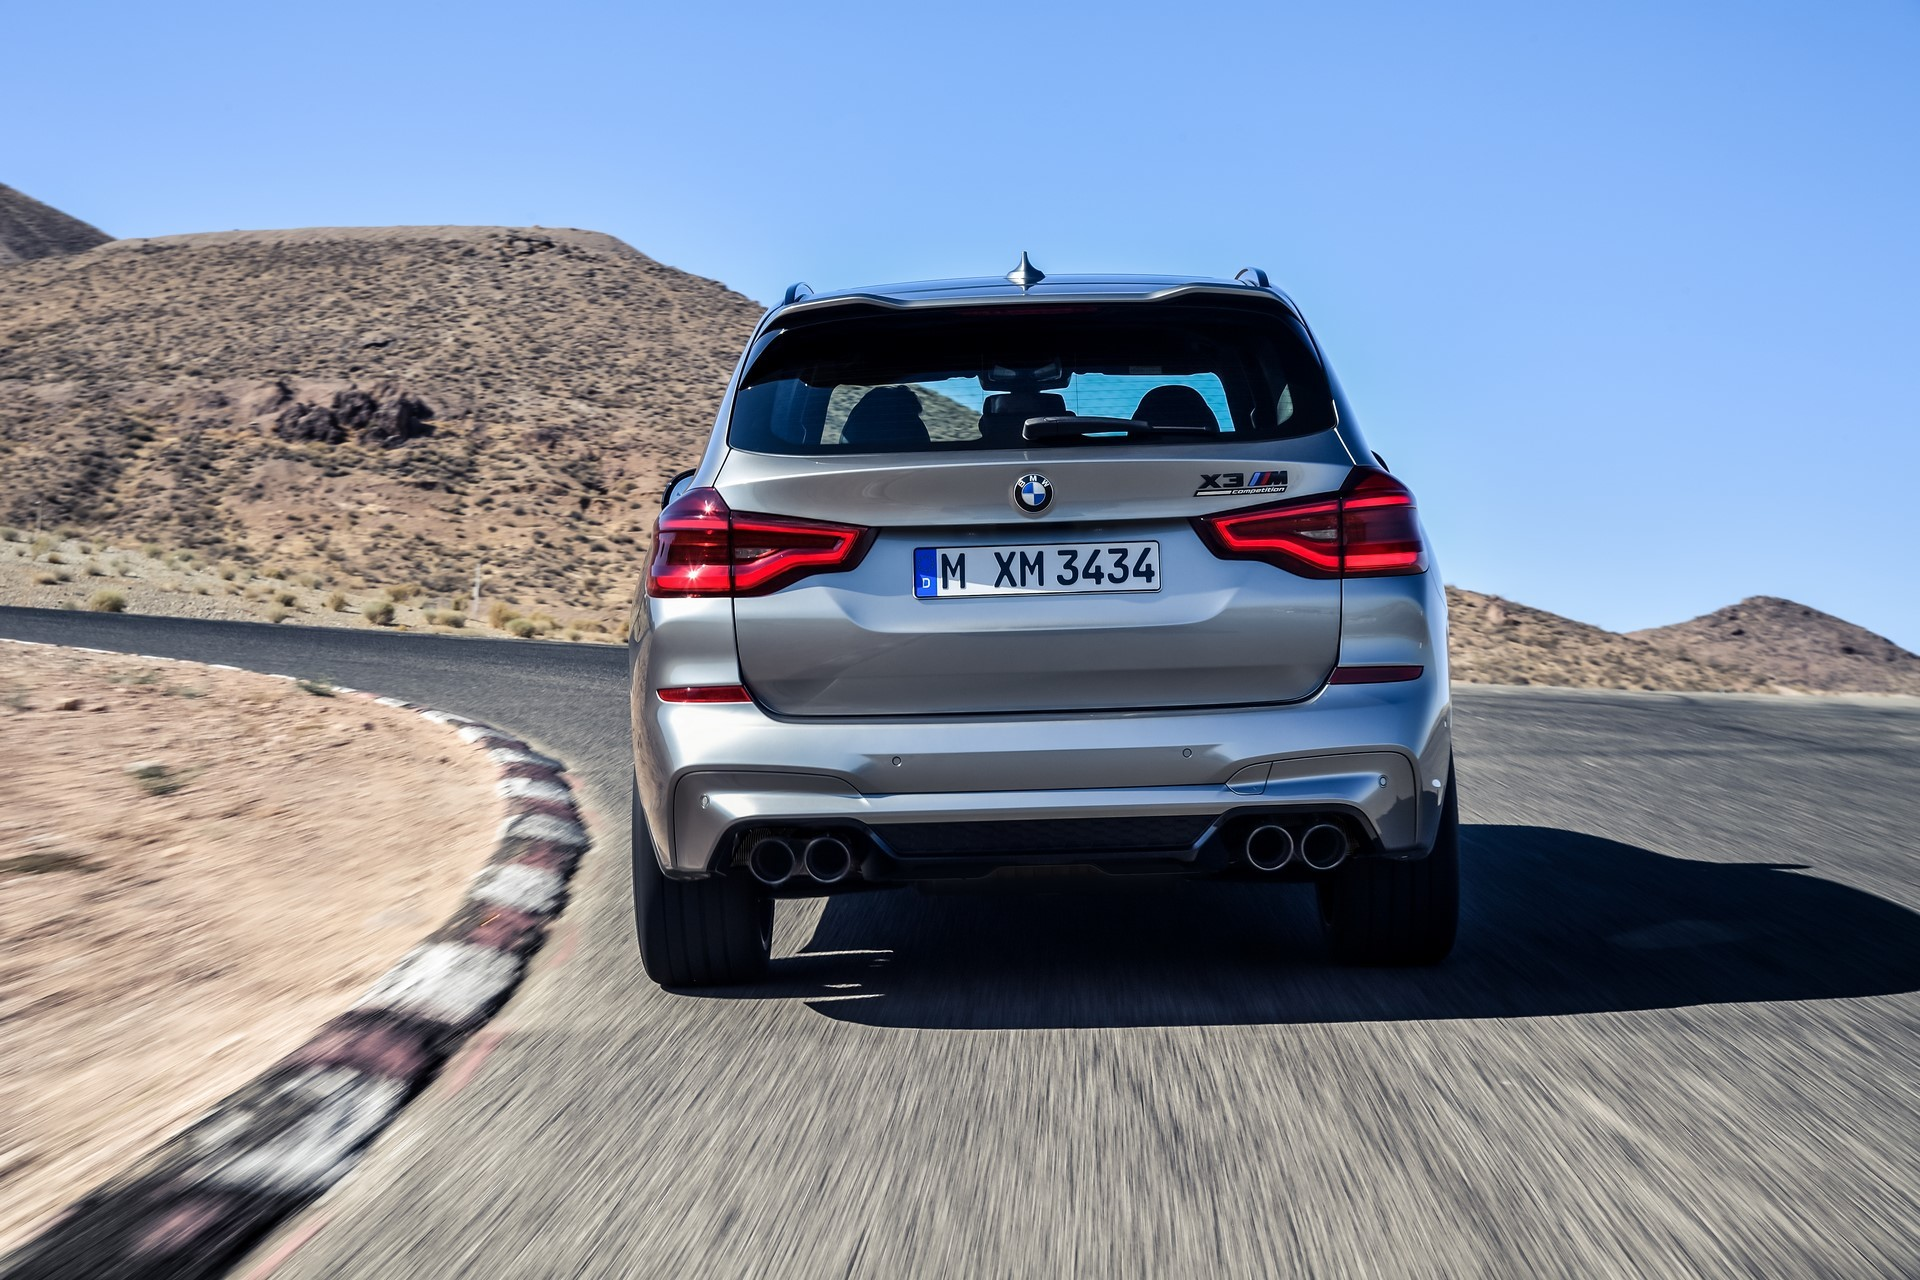 BMW X3 M and X4 M 2019 (18)